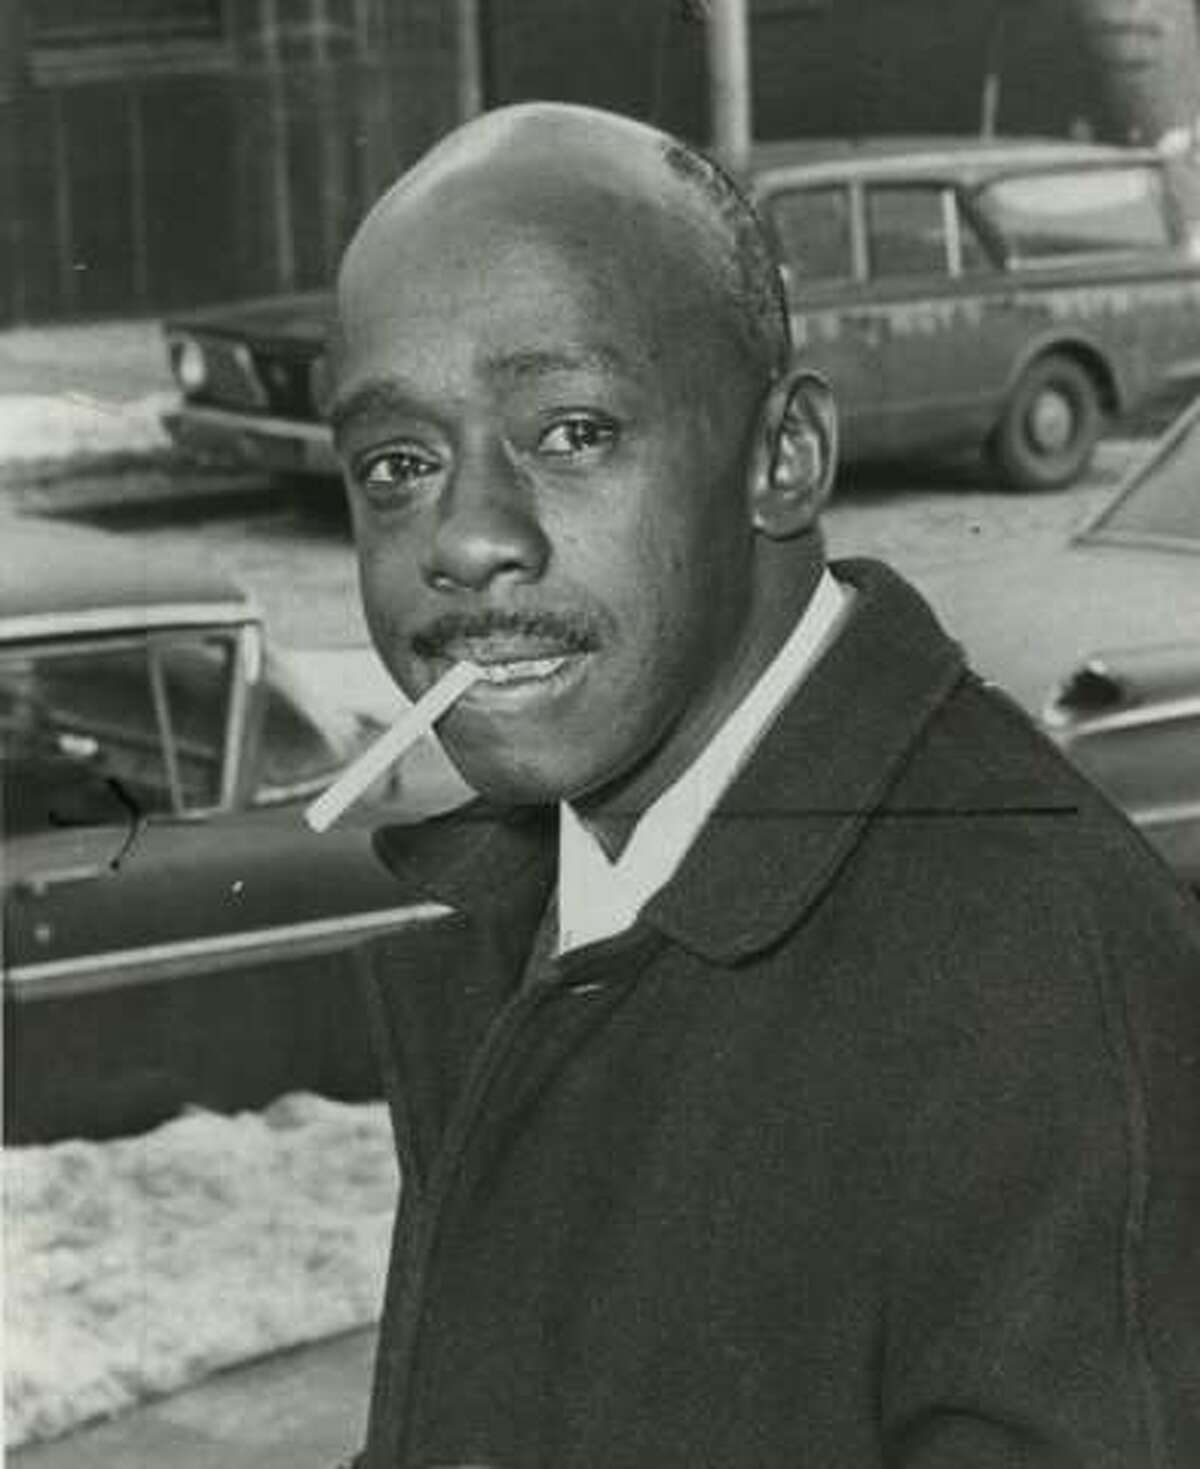 Leon Van Dyke in Albany in the 1960s, when he was a leader of the militant organization known as The Brothers.